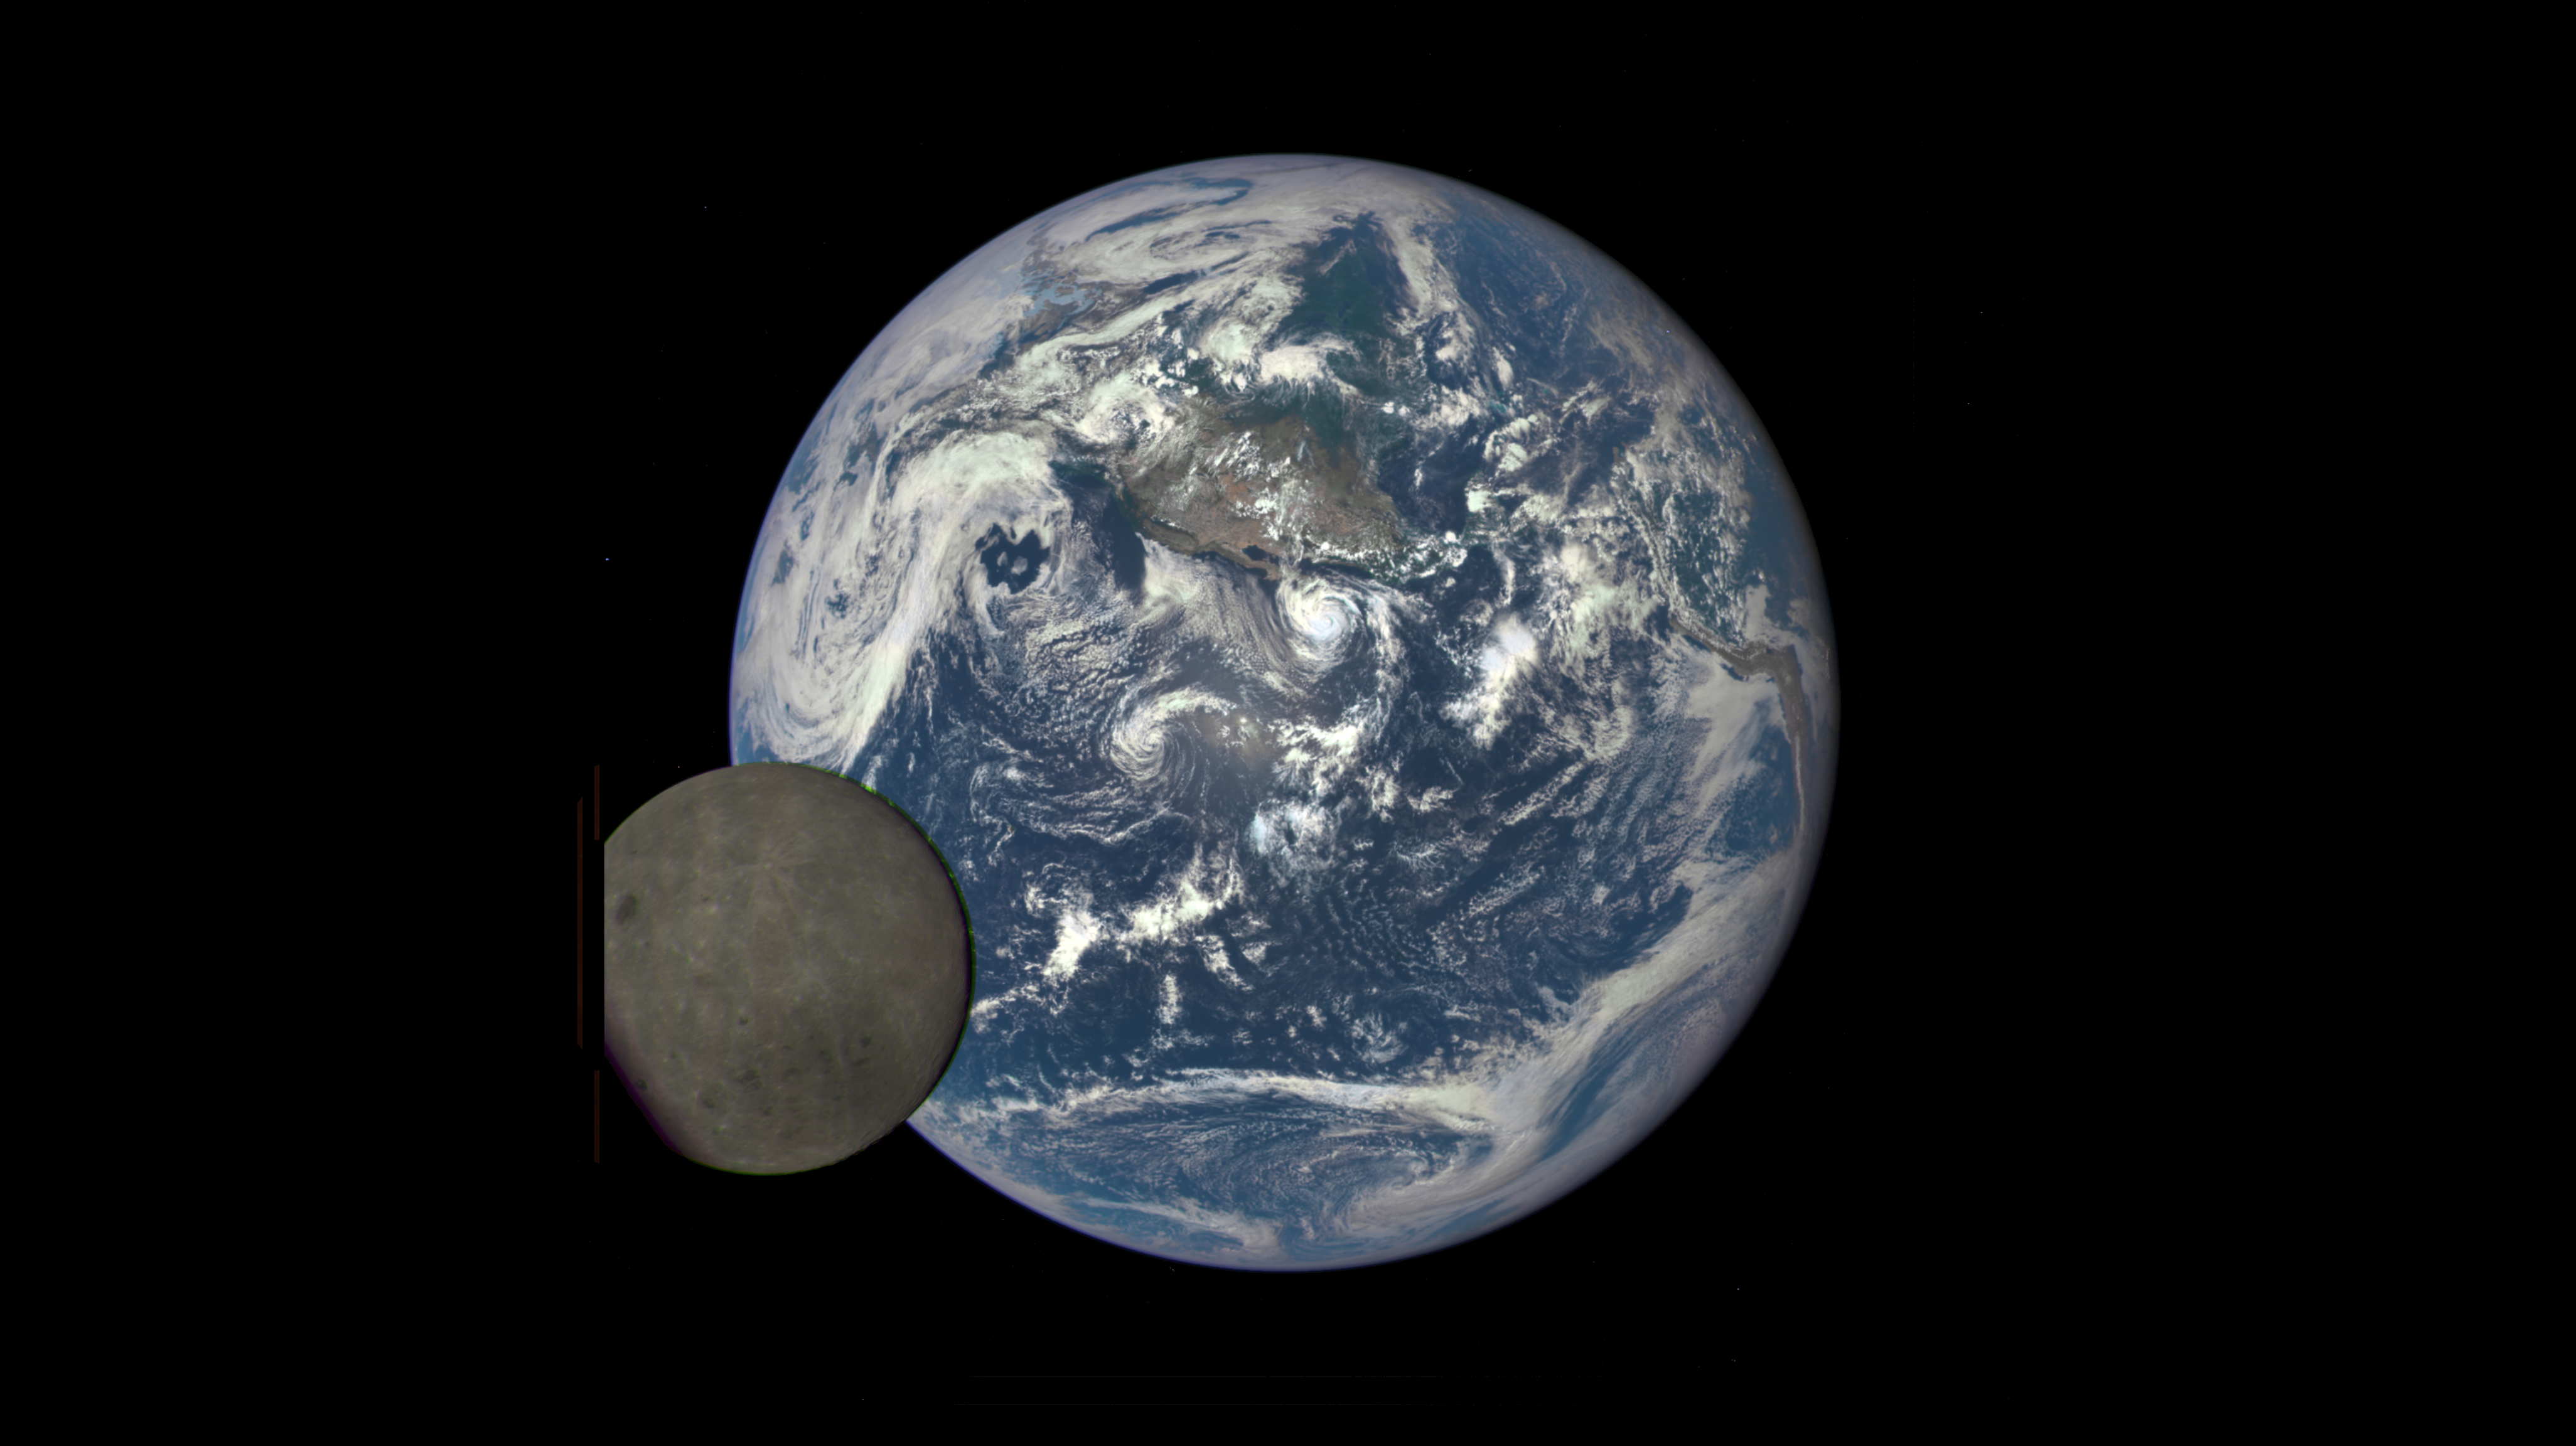 Nasa pictures of the dark side of moon